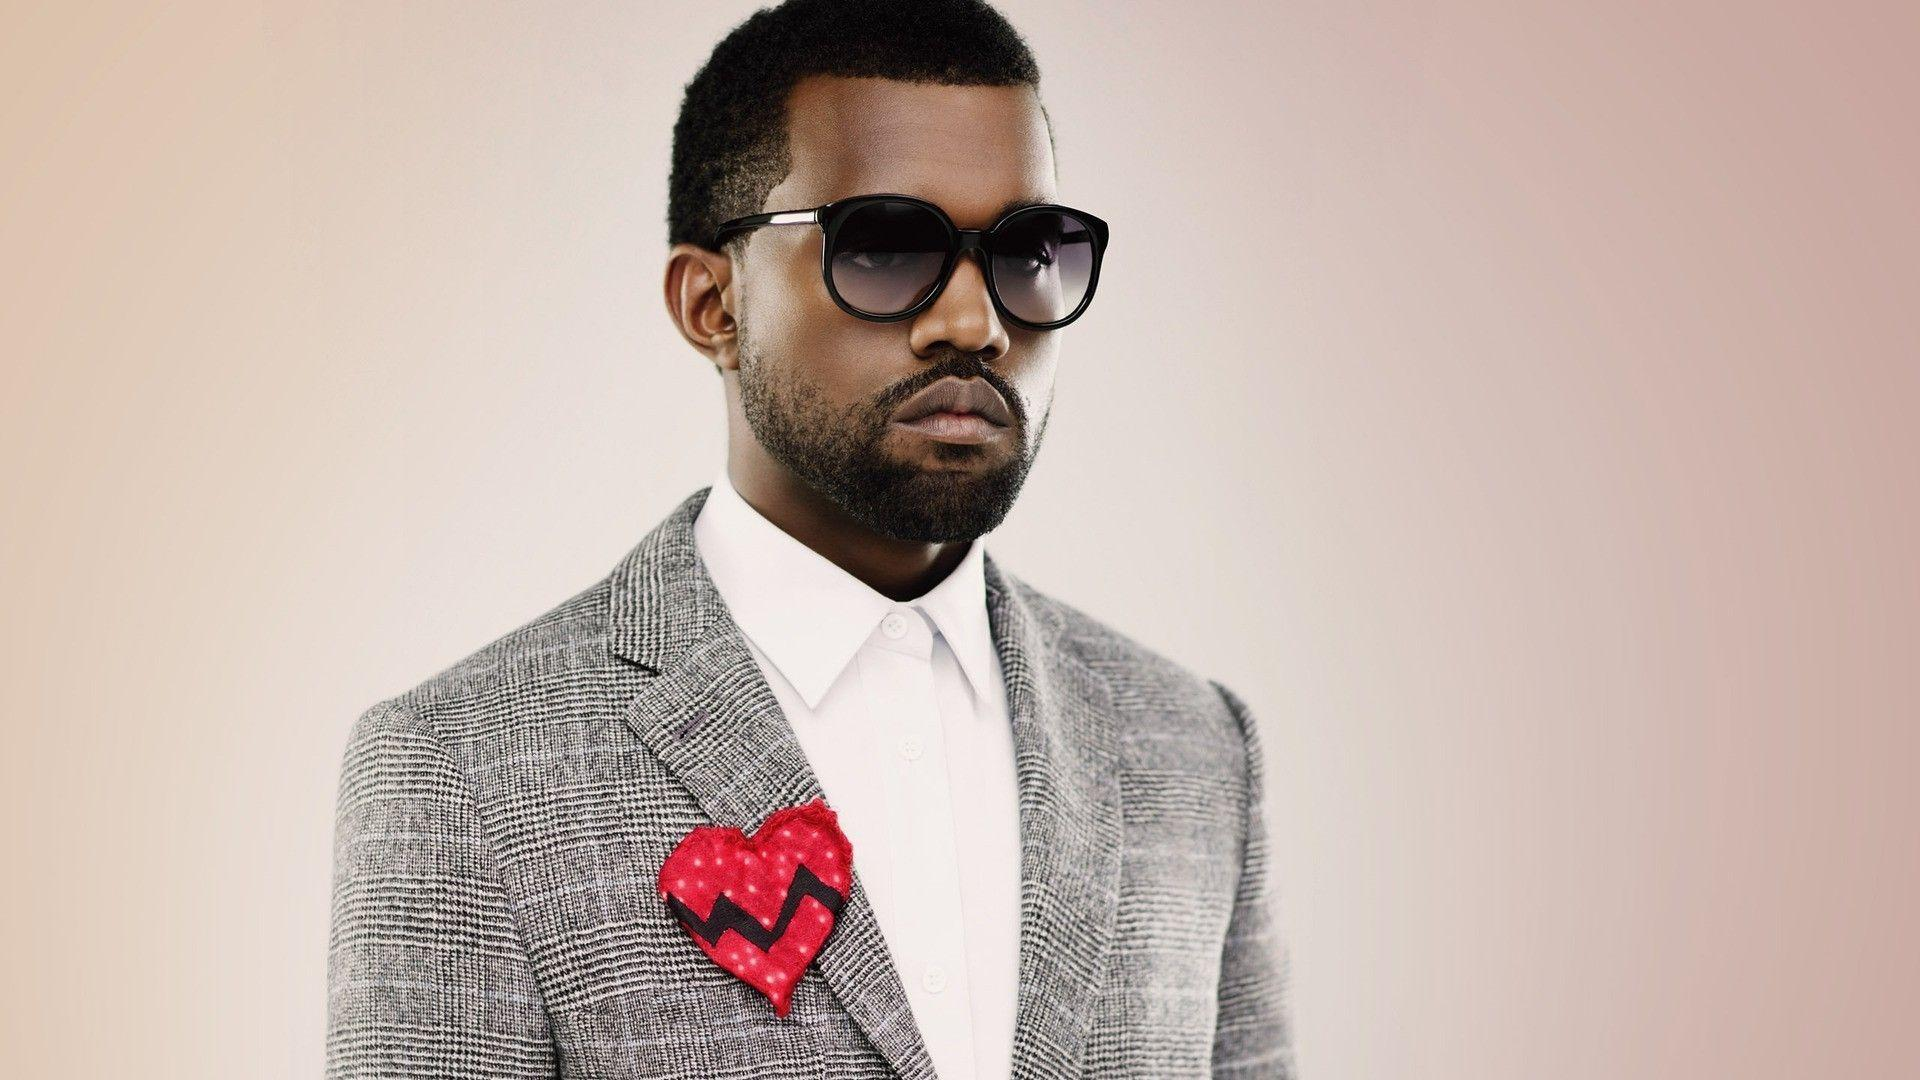 Kanye West HD Wallpaper Power - WallpaperSafari